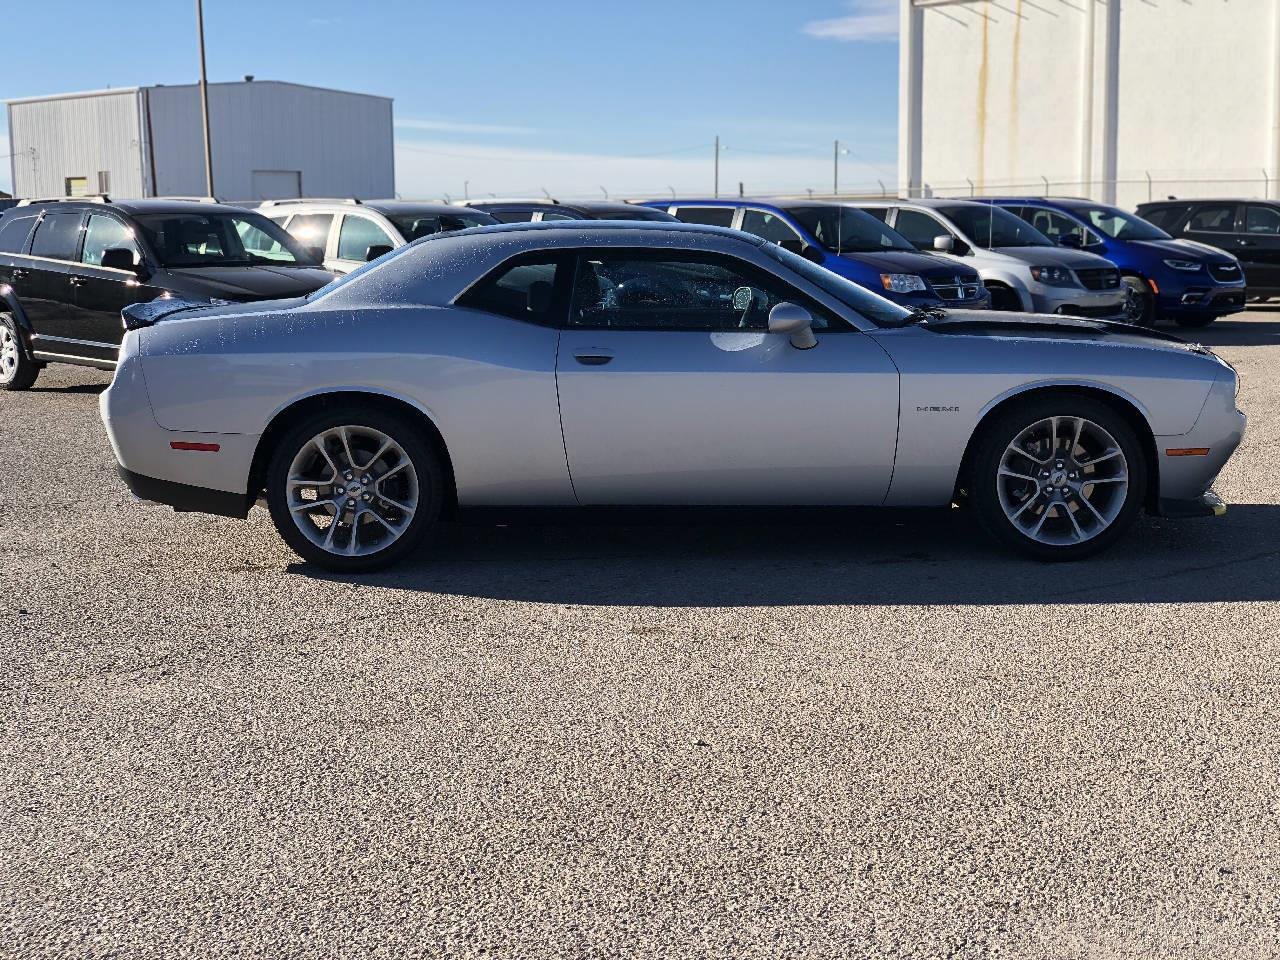 New 2020 DODGE Challenger R/T 50th Ann.